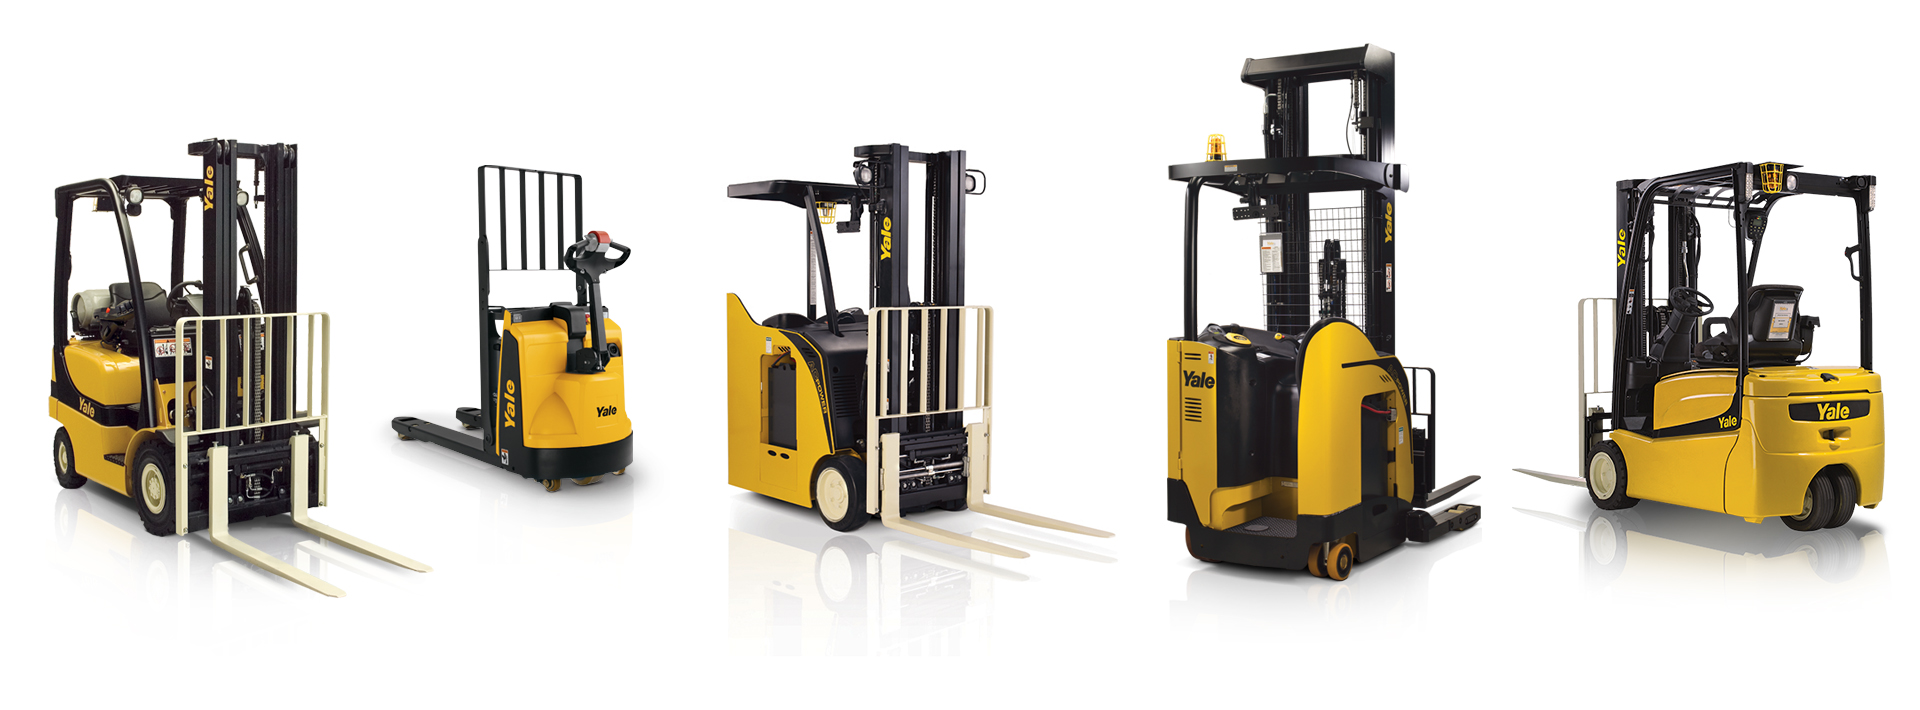 Yale receives Edison Gold Award thanks to its robotic reach truck | The  HeavyQuip Magazine